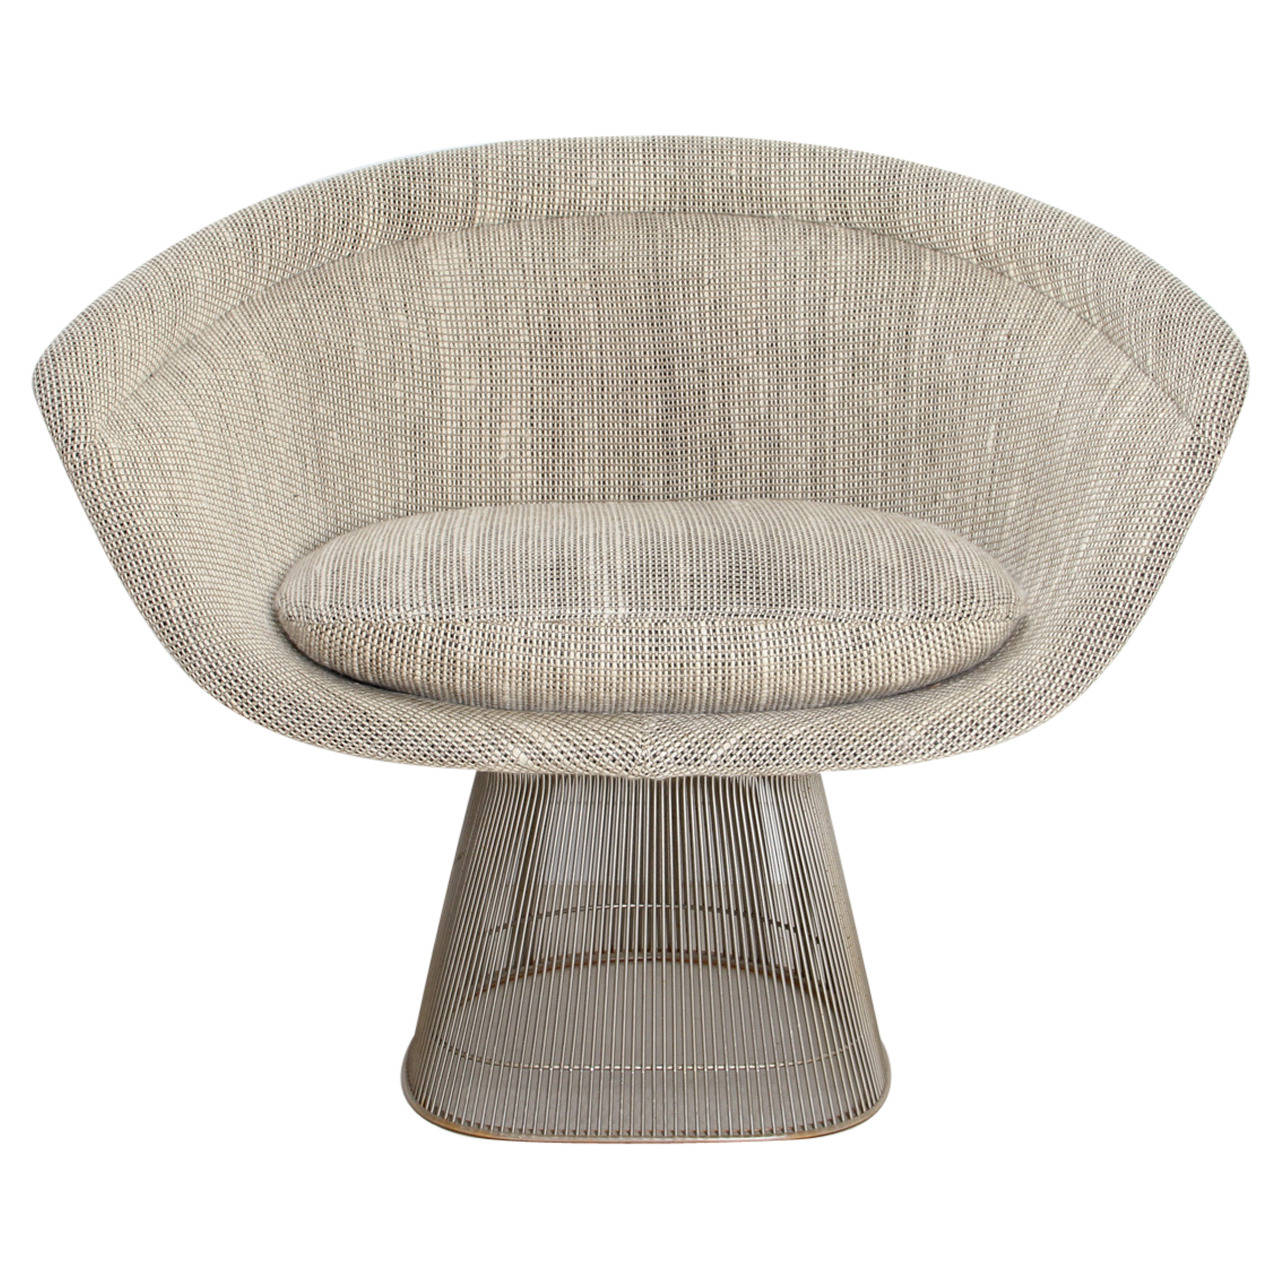 this 1966 lounge chair designed by warren platner produced by knoll is